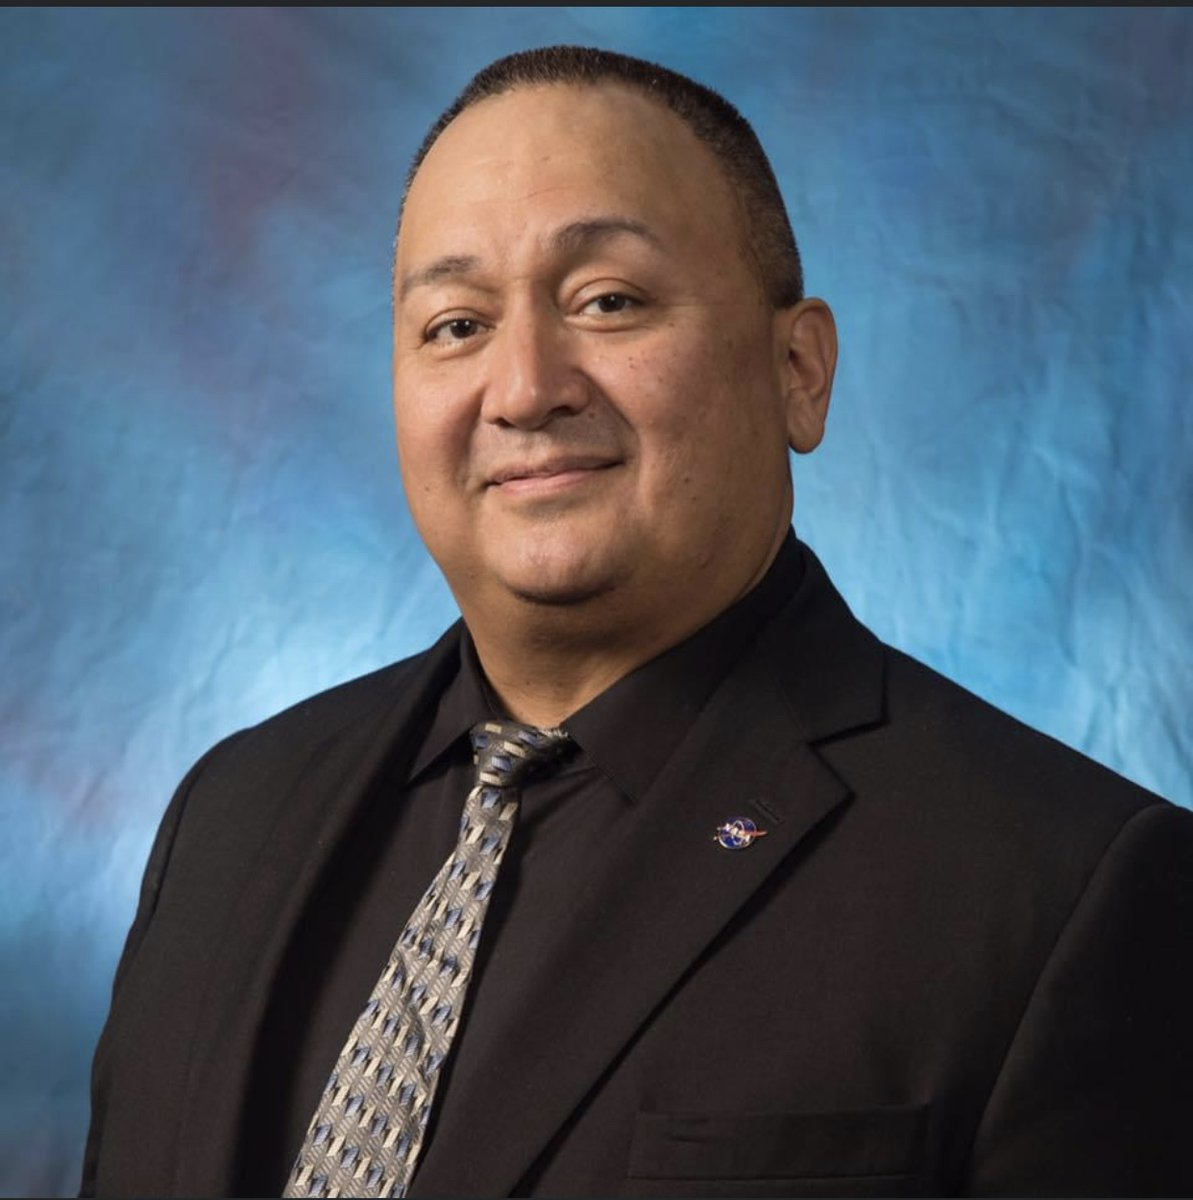 Over the course of a 20-year career at NASA, Eddie Gonzales has worked to promote STEM engagement for underrepresented and underserved communities. nasa.gov/image-feature/… #HispanicHeritageMonth